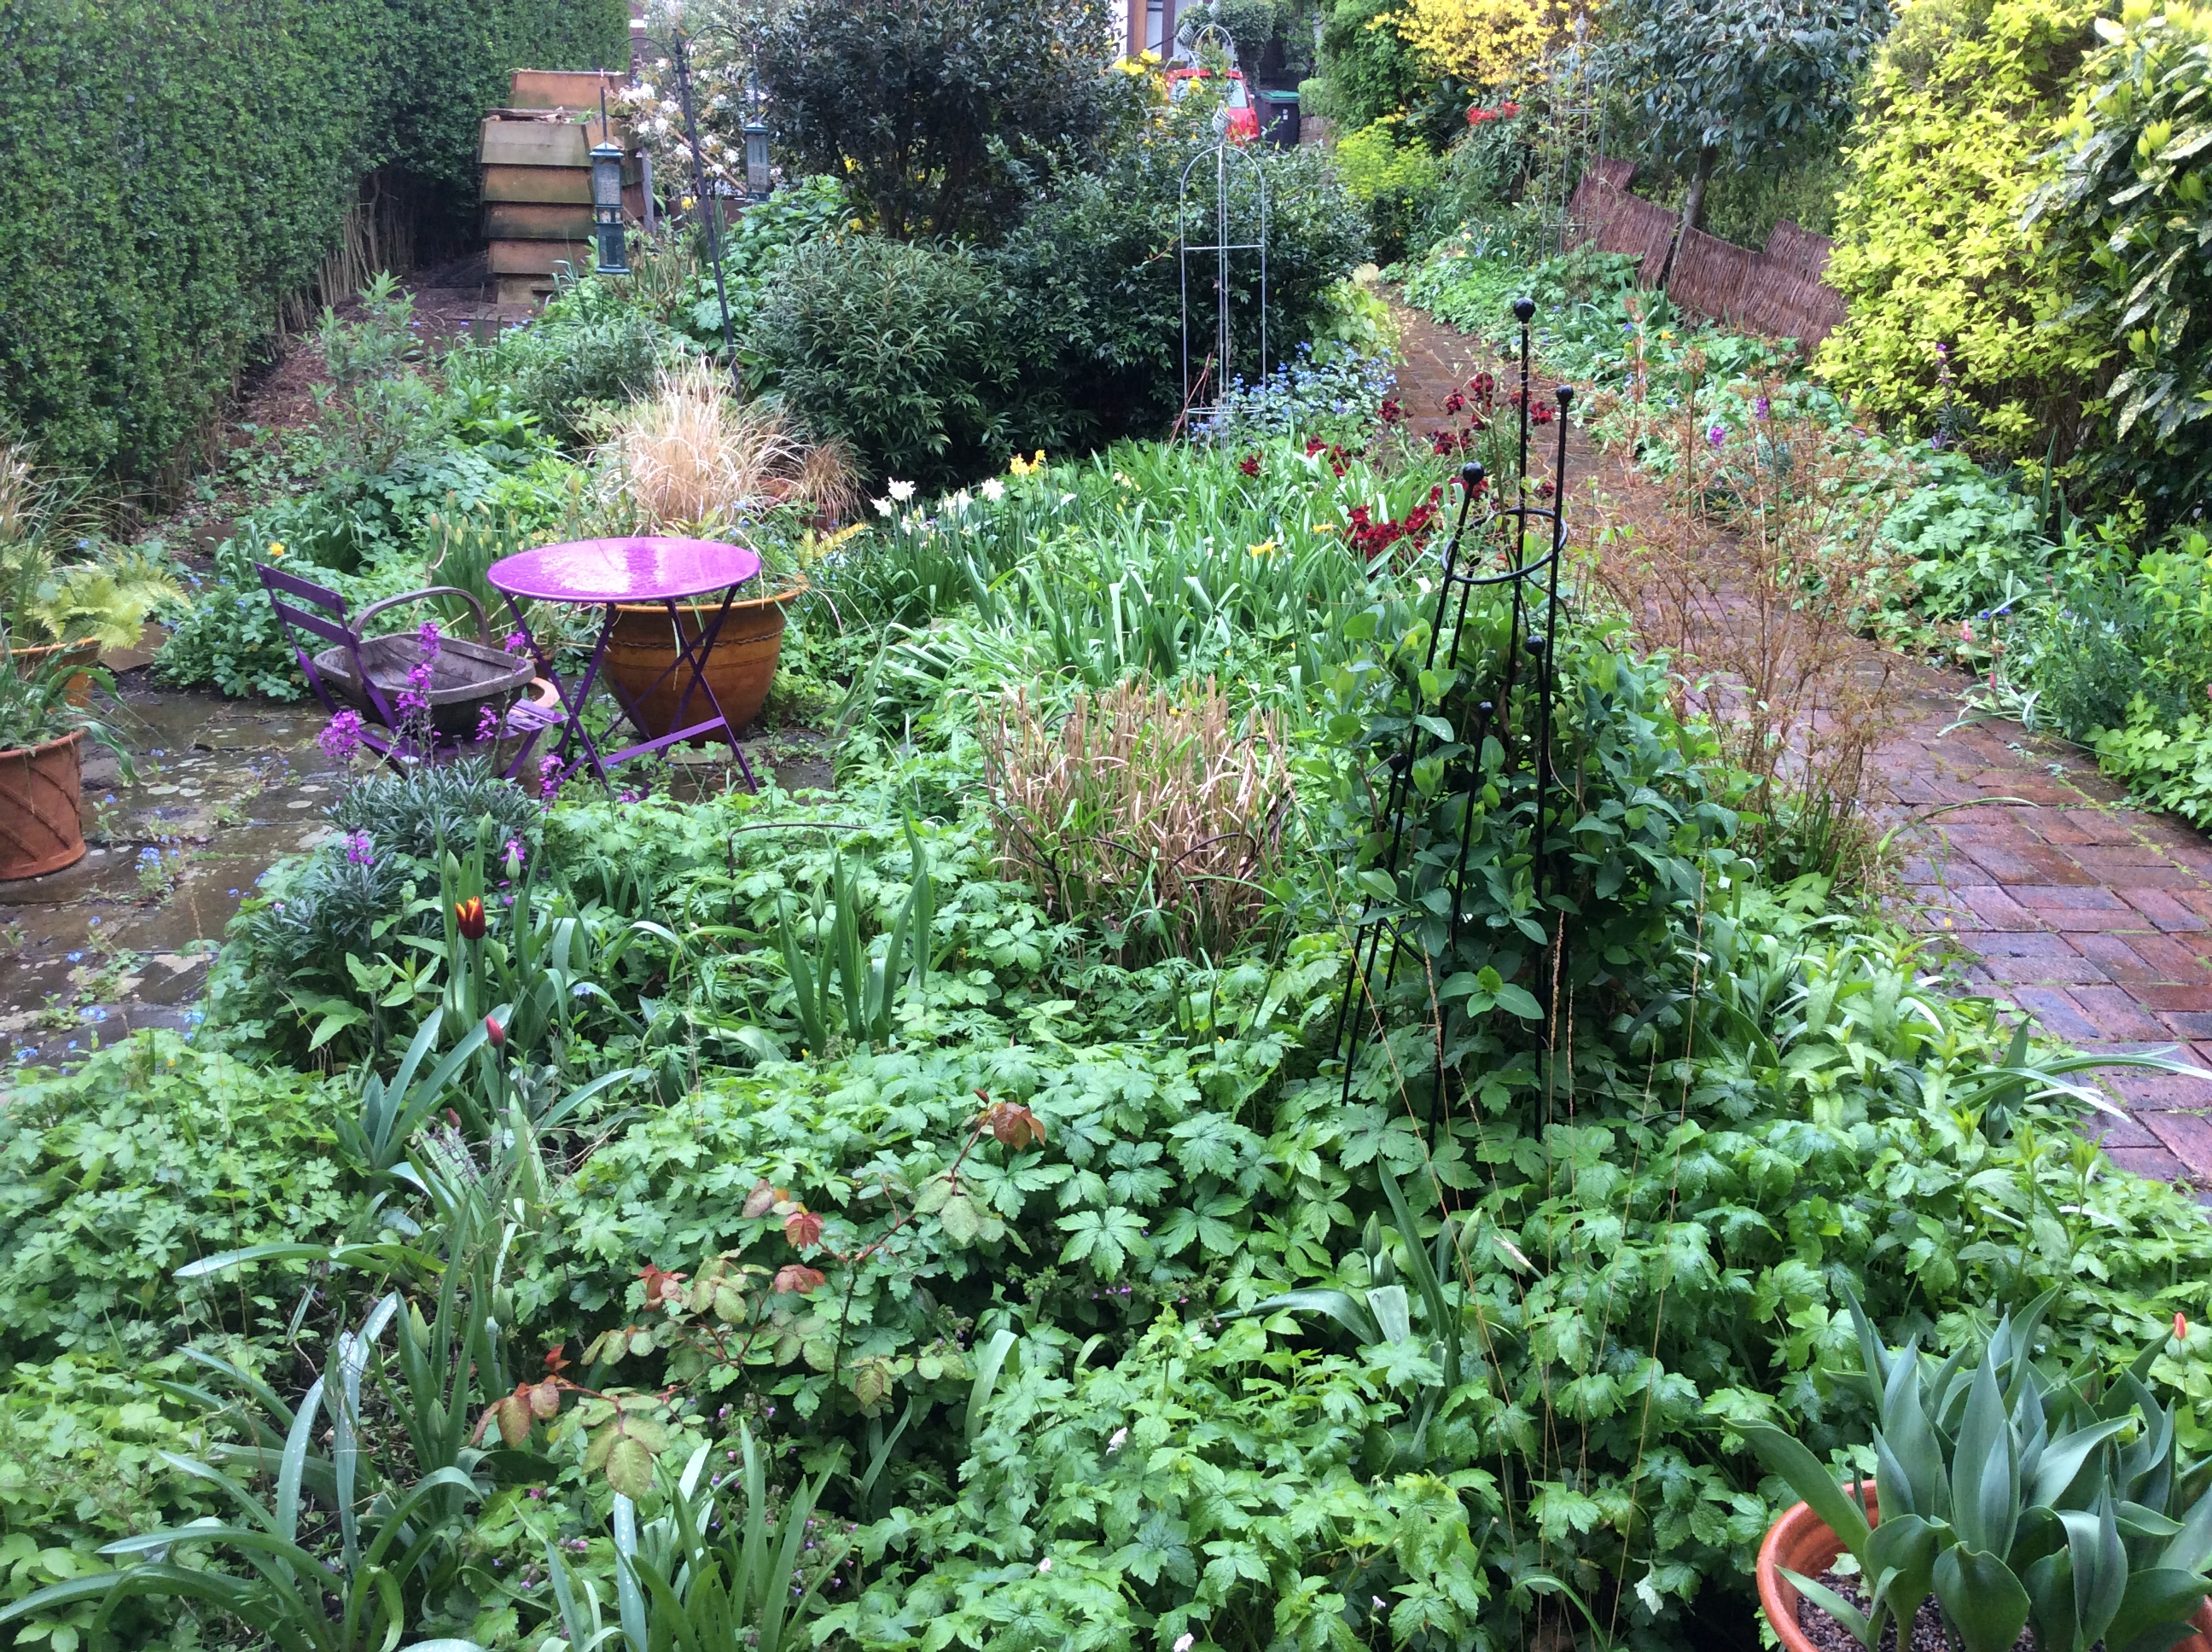 London cottage garden view